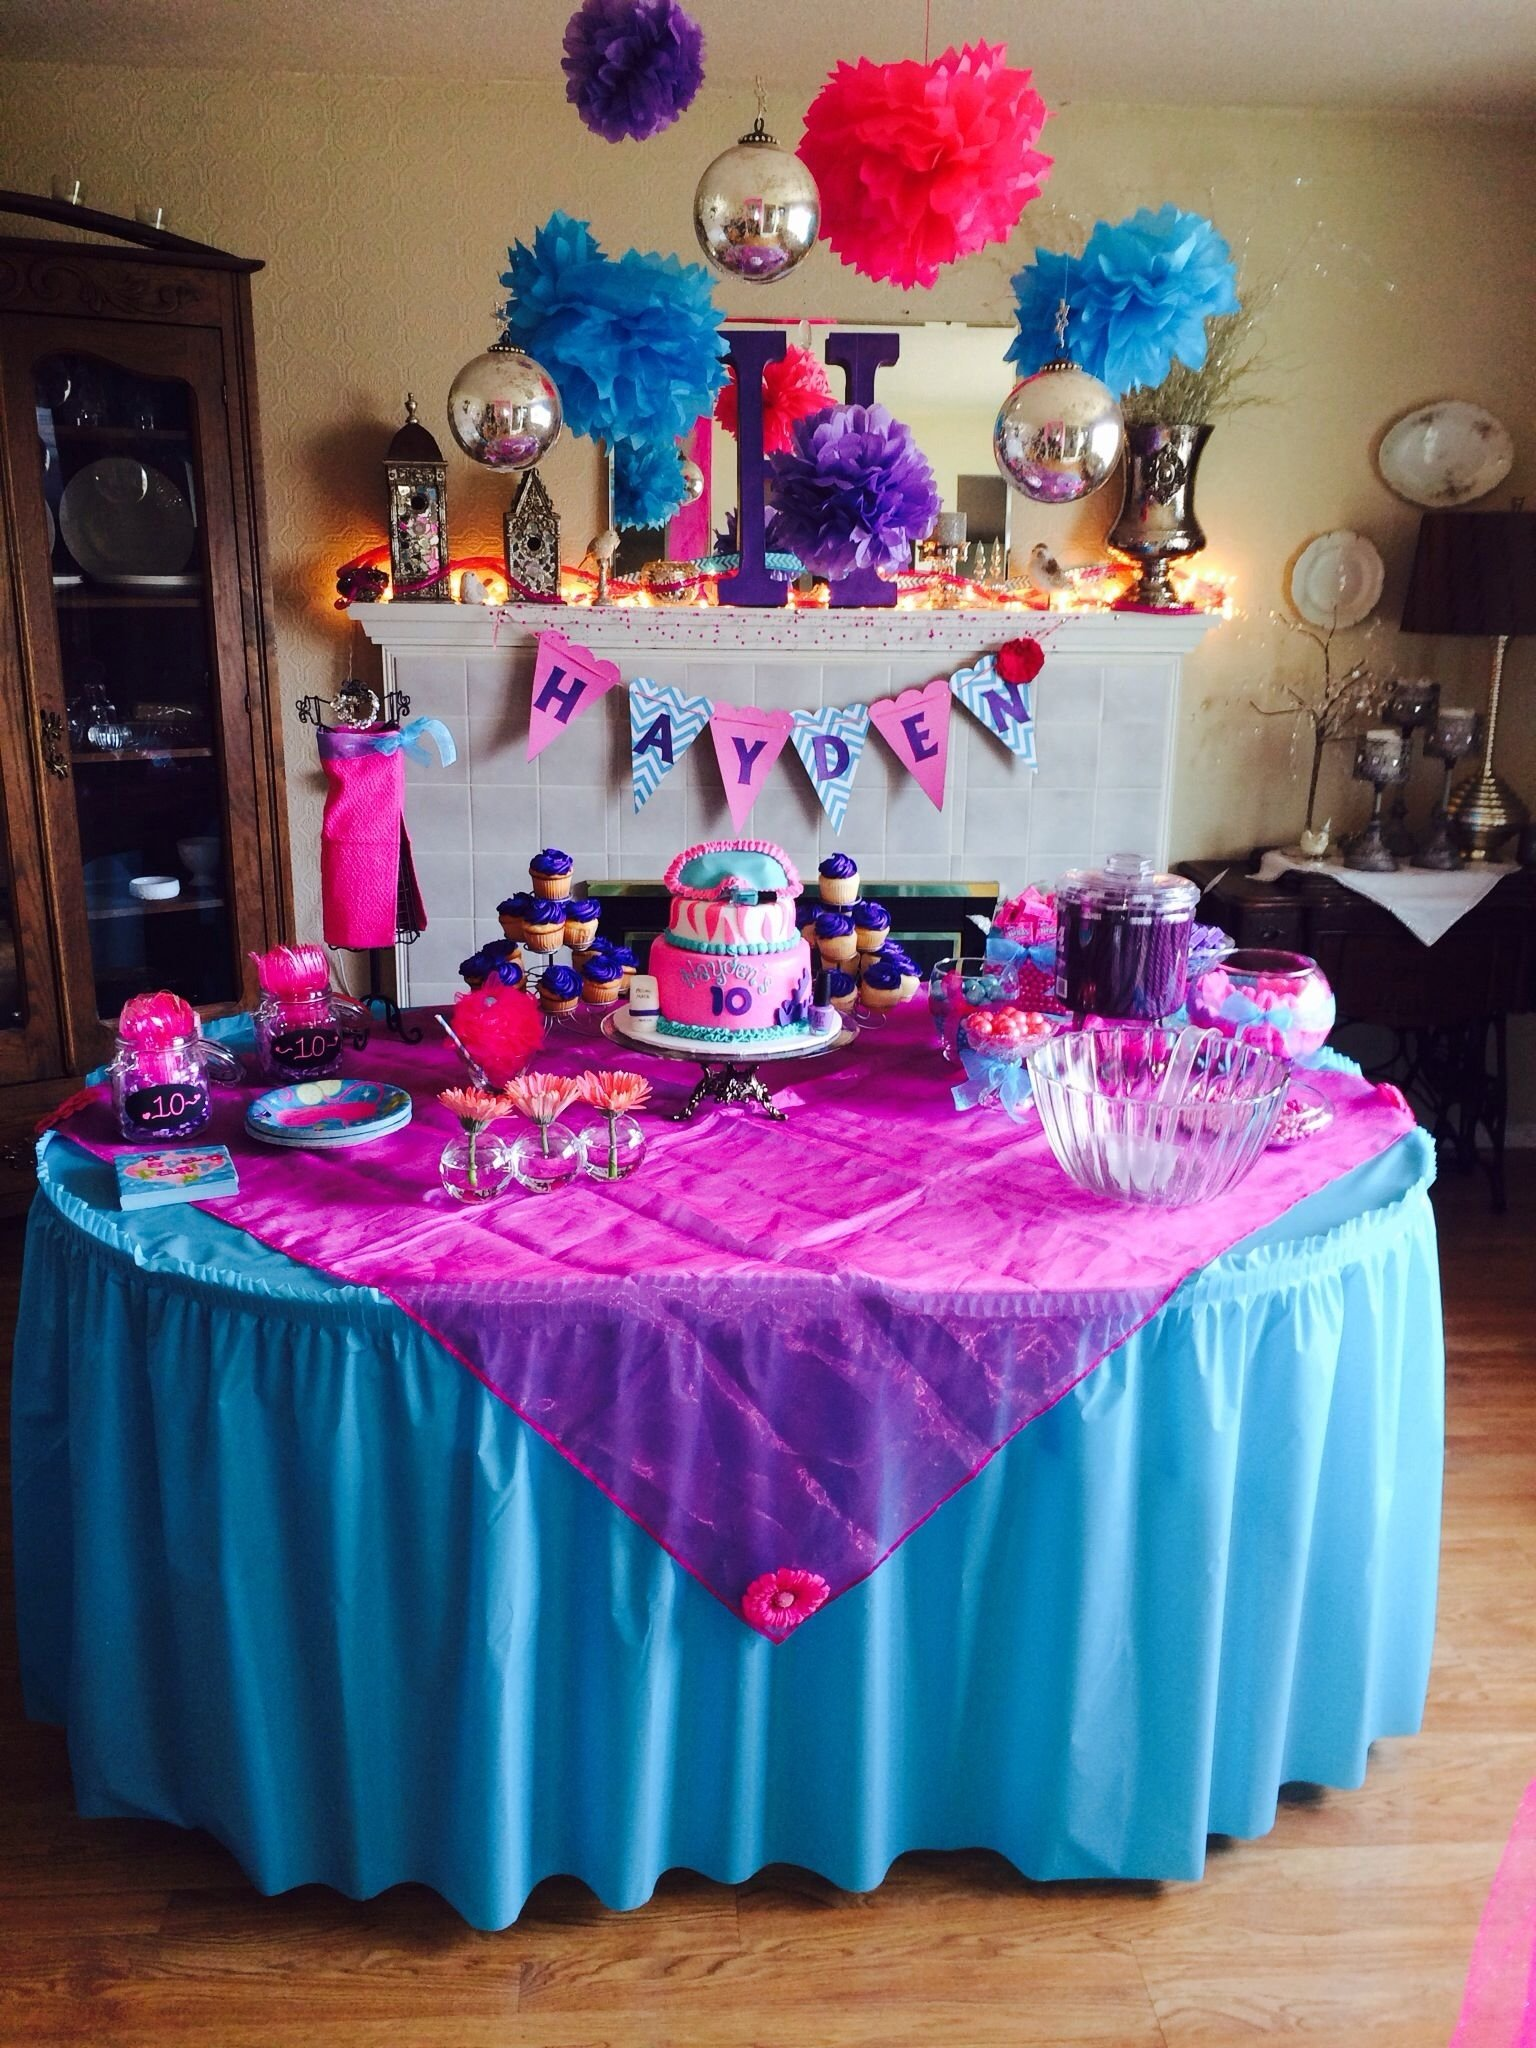 10 Fantastic Birthday Party Ideas For 11 Year Old Girl girls 10th birthday party party ideas pinterest 10th birthday 10 2020